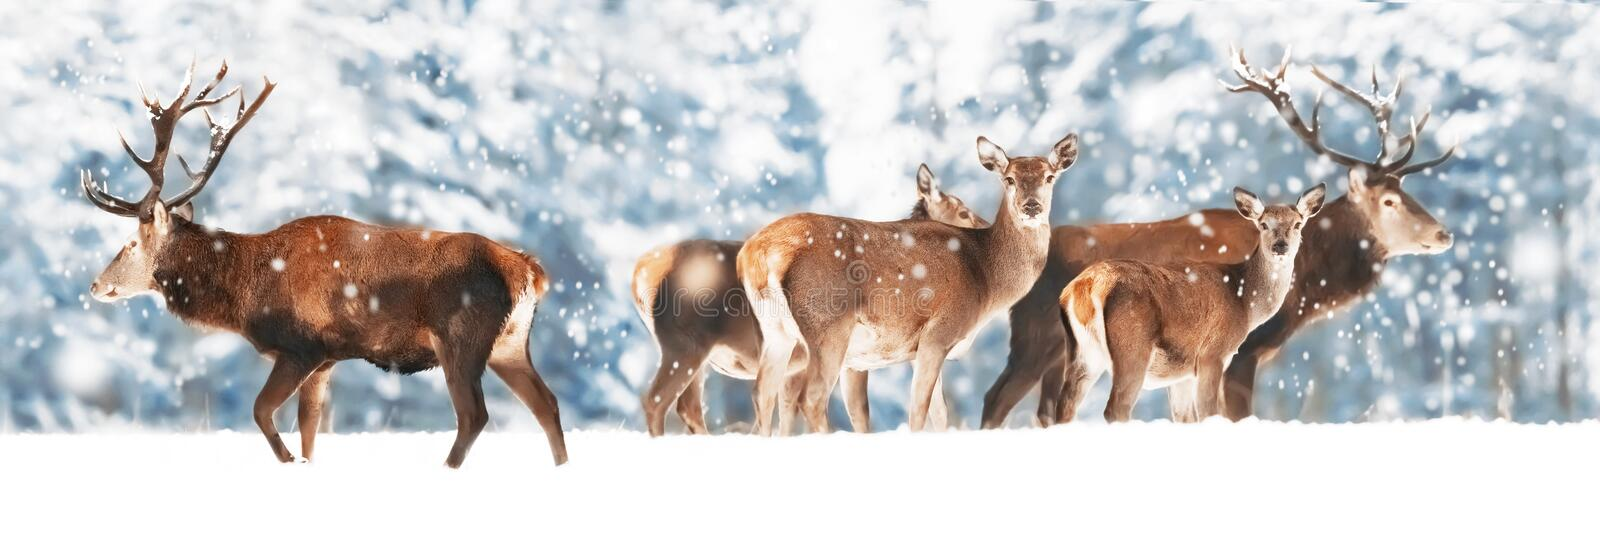 A noble deer with females in the herd against the background of a beautiful winter snow forest. Artistic winter landscape. Christmas photography. Winter stock photo